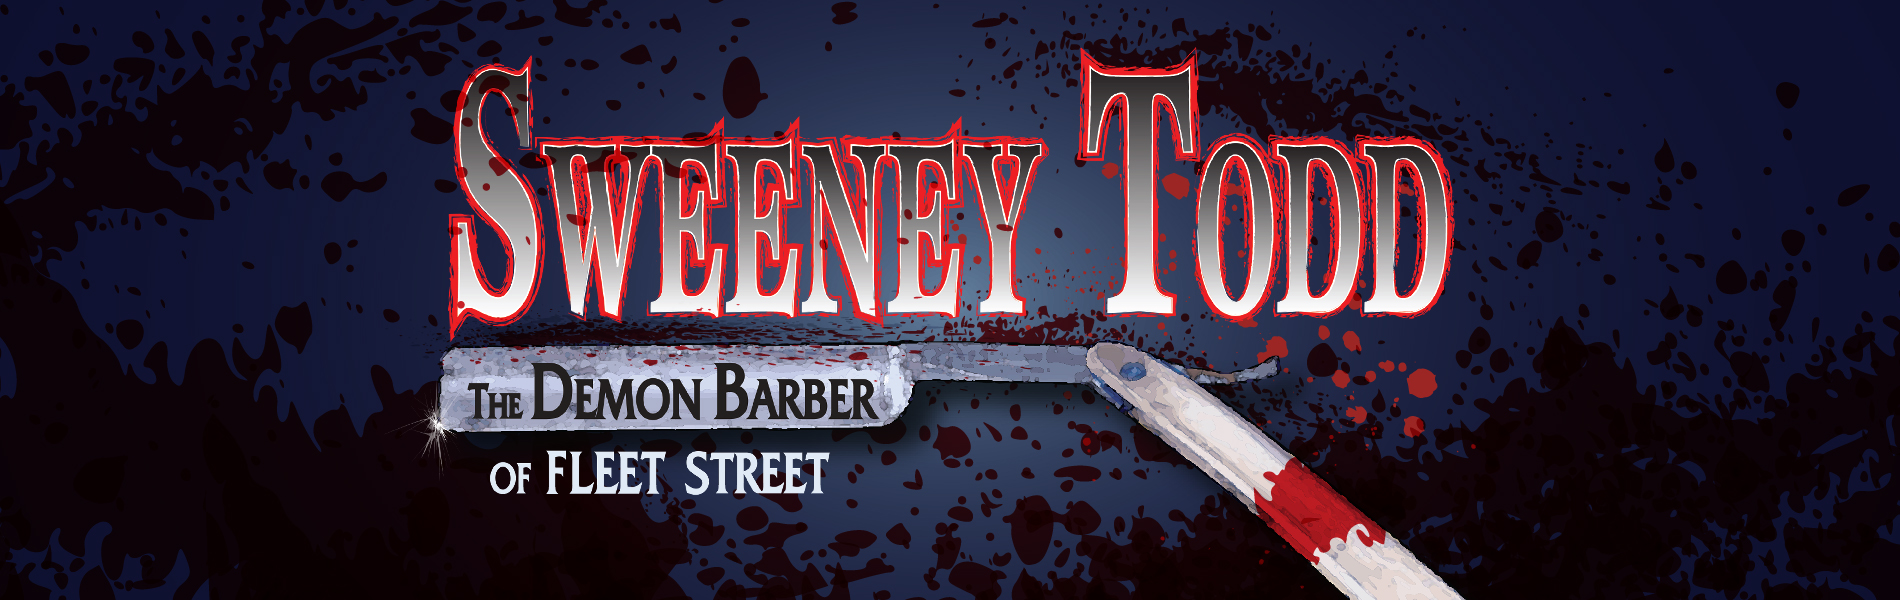 sweeney todd play banner